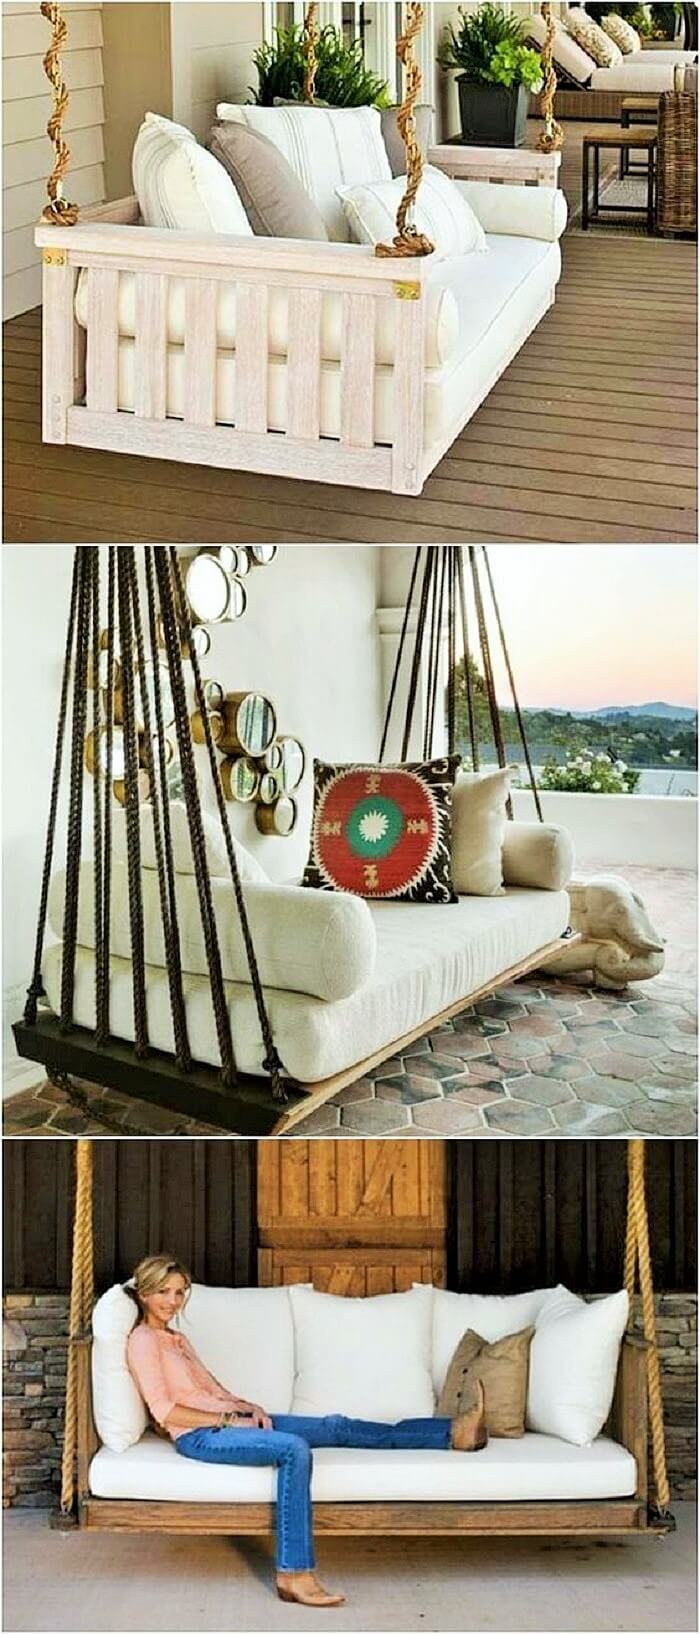 DIY-Swinging-Bench-Project